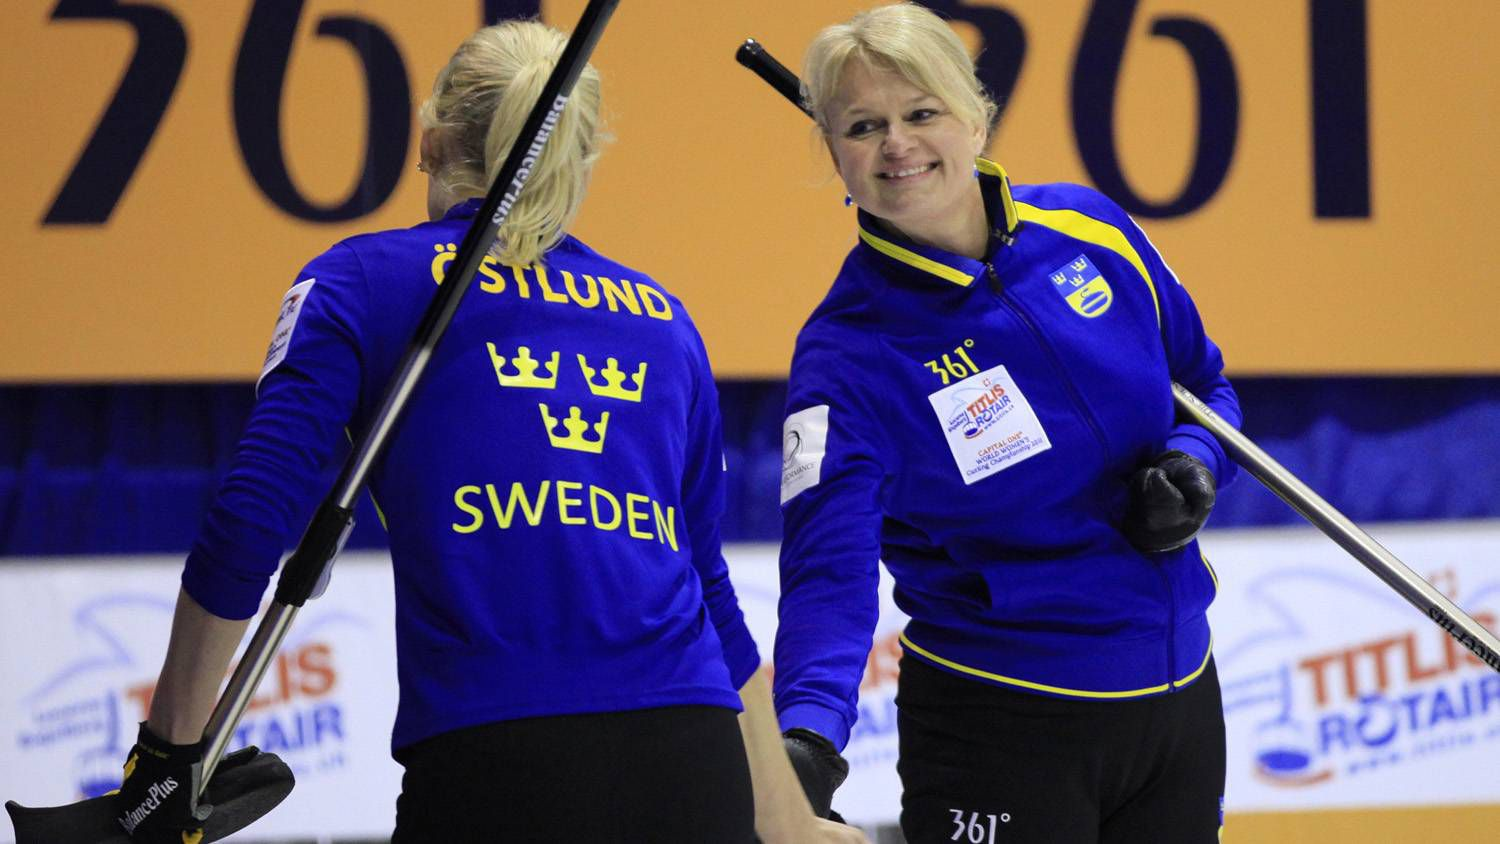 Anette Norberg sweden snaps canada's win streak at women's curling event